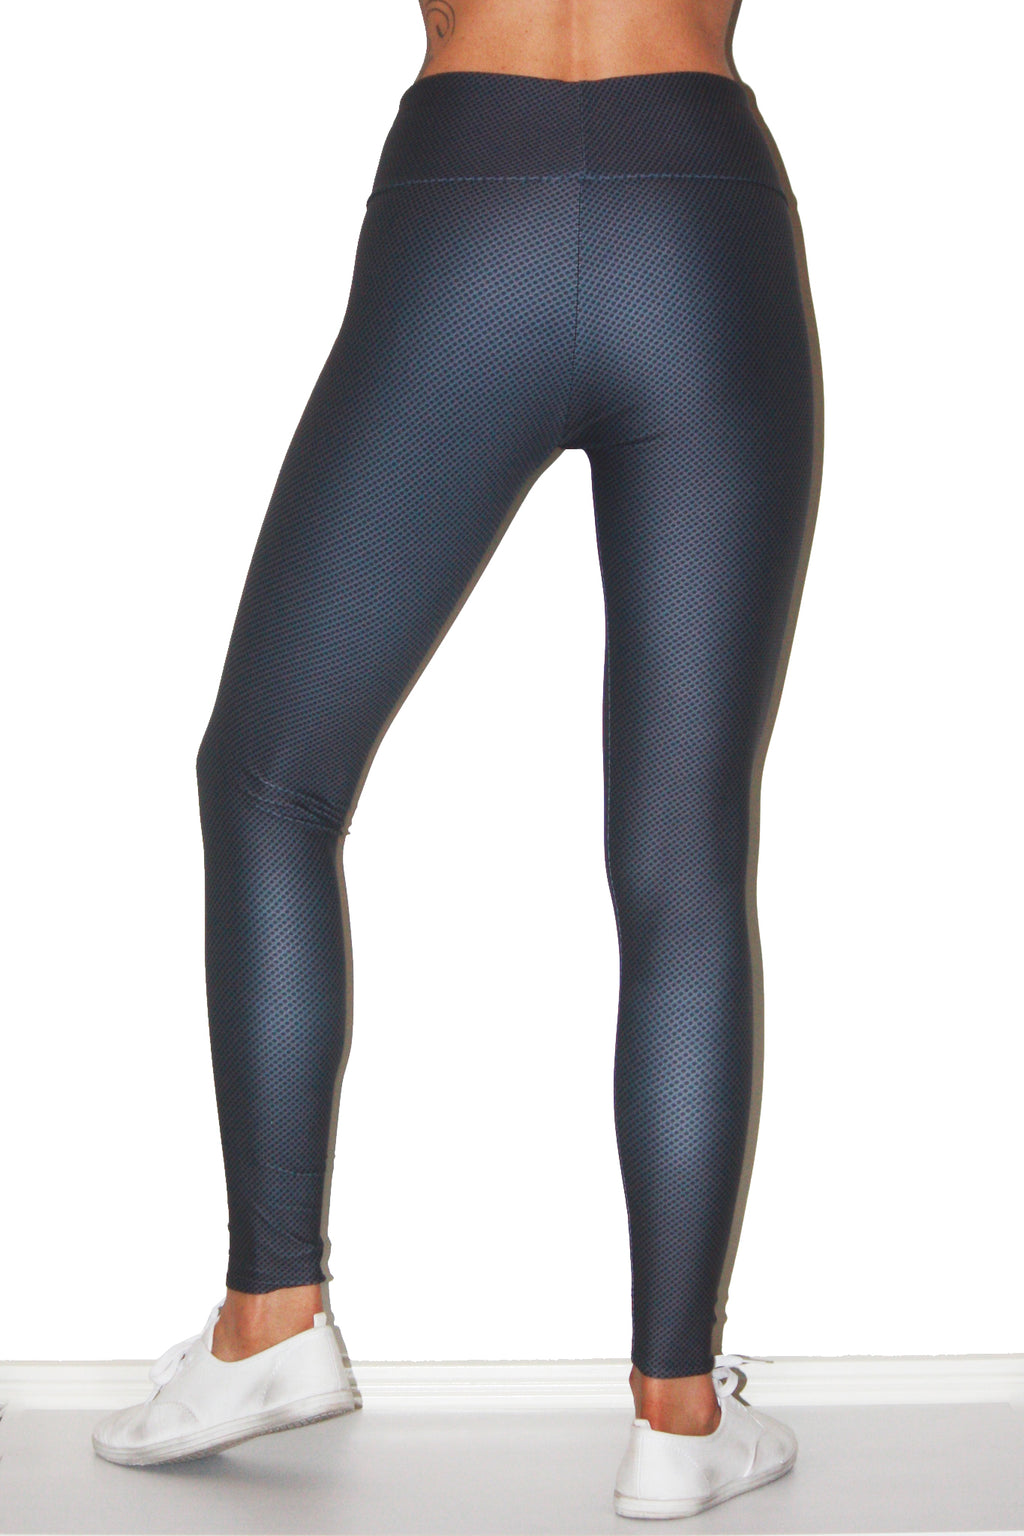 Shop Alea Active Sweat Society Vitality Tight Gunmetal Spot USA Canada